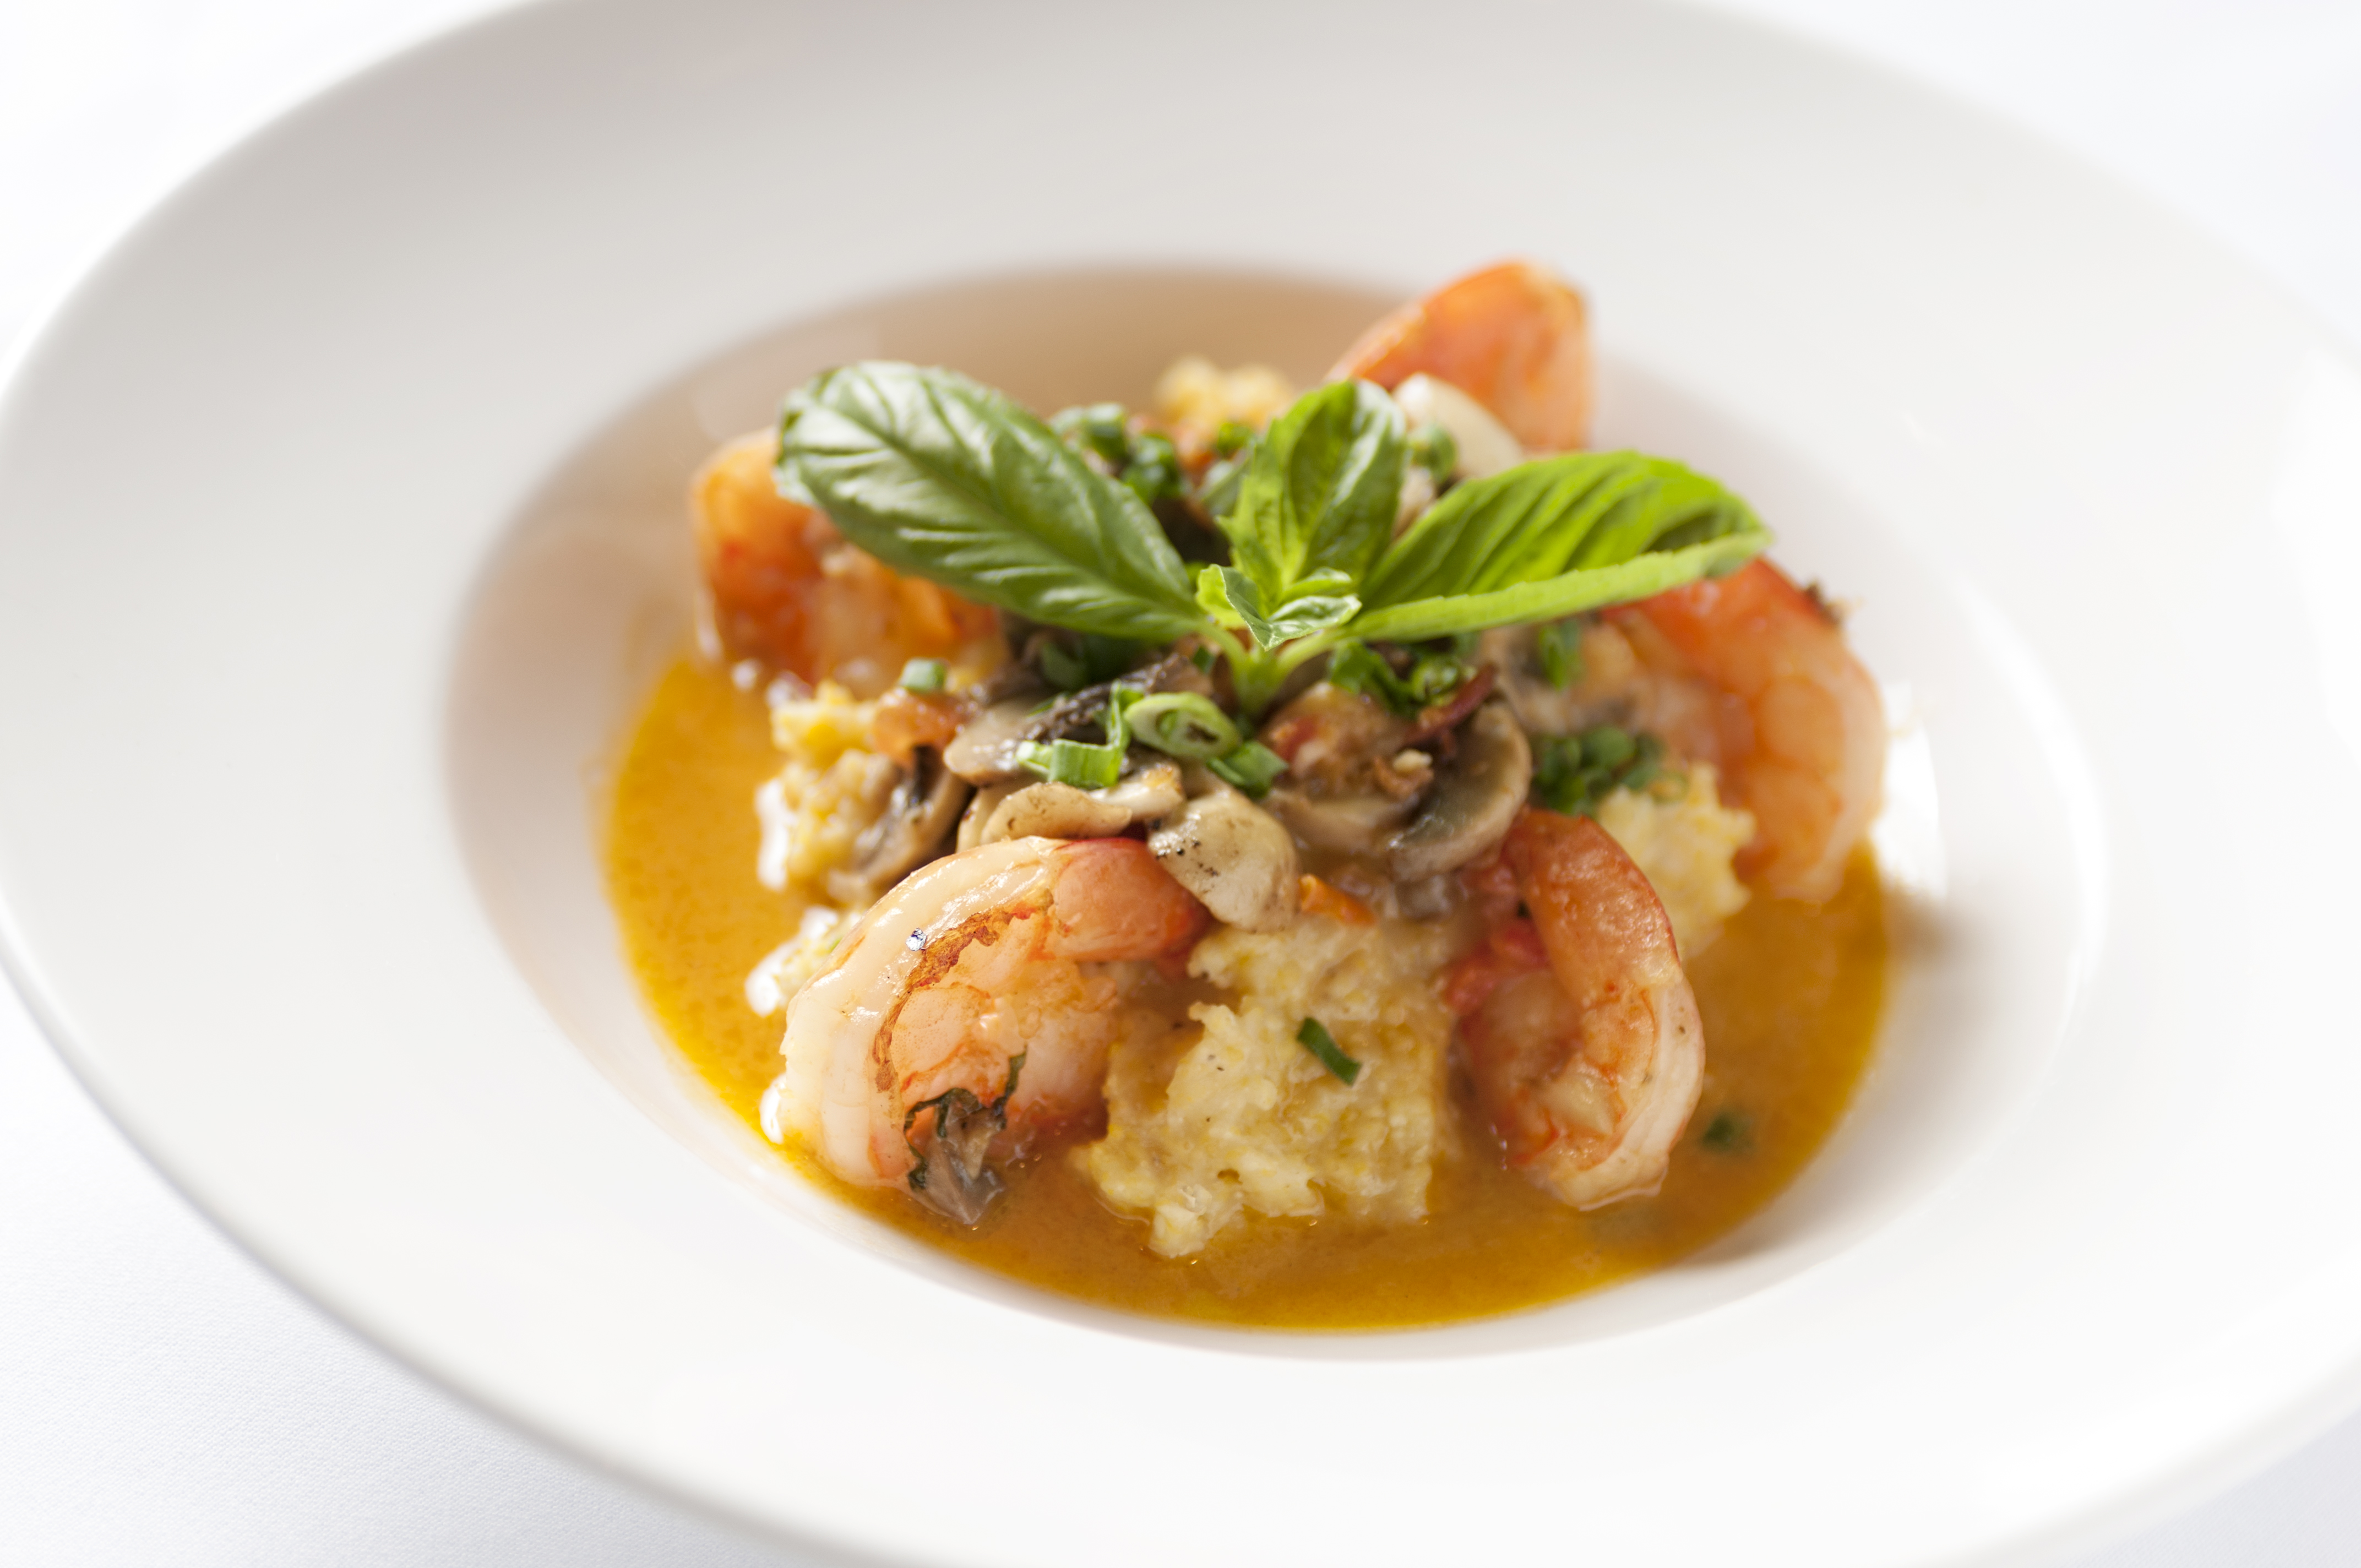 Hearty Shrimp and Grits Fixes - 02-17-2015 : primary_keywords in ...